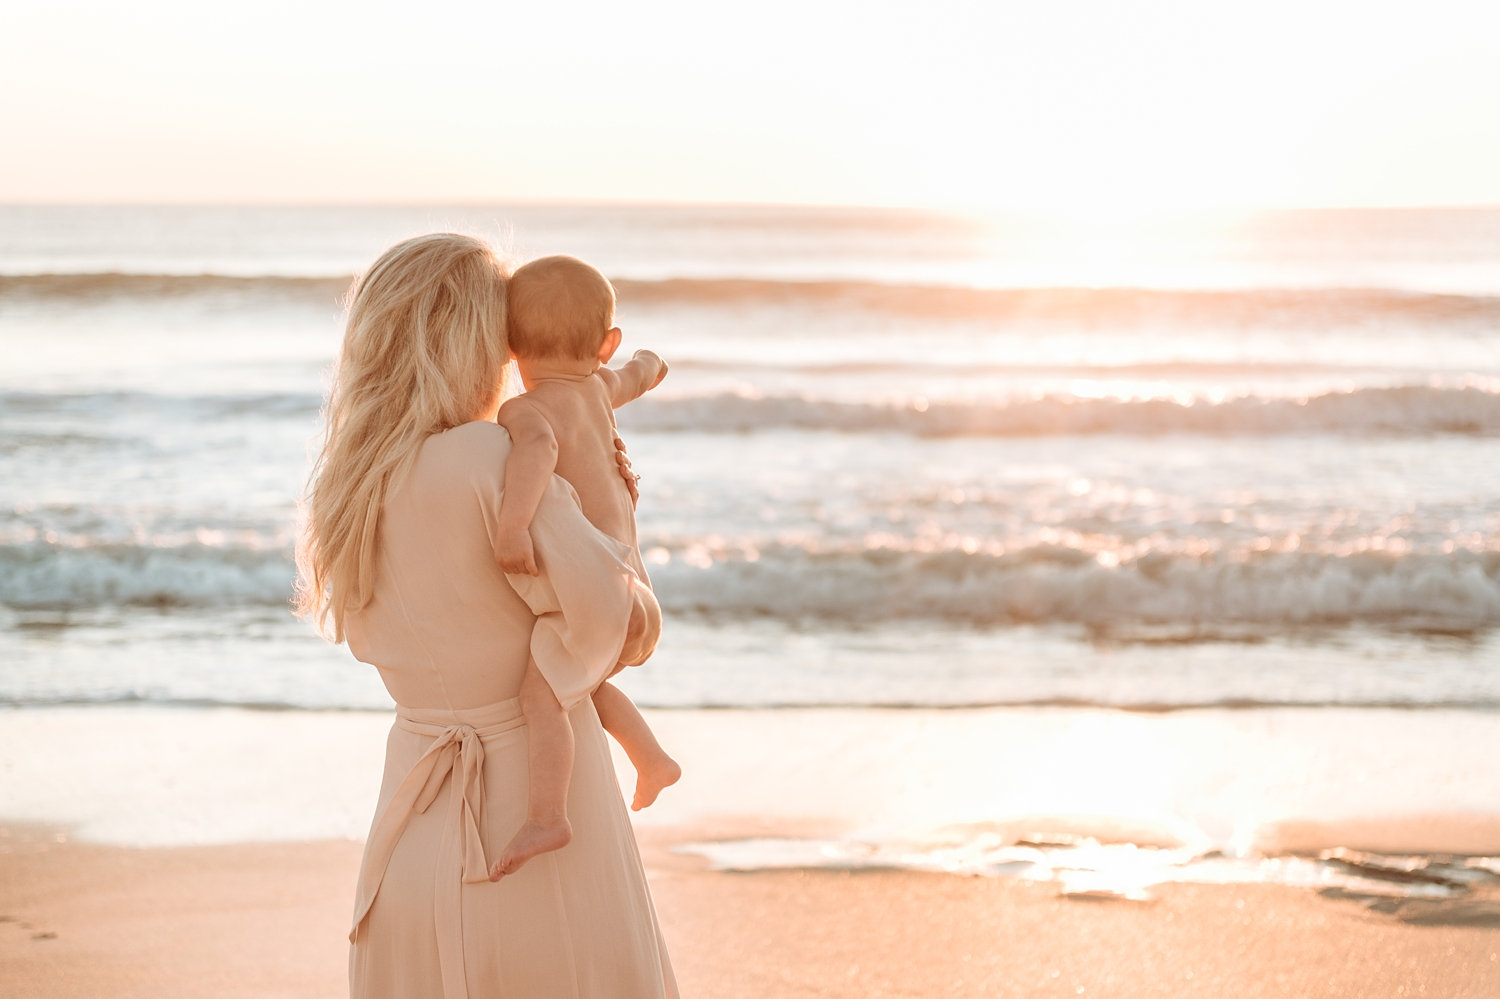 blonde mother and baby staring into the ocean, coastal motherhood session, Ryaphotos